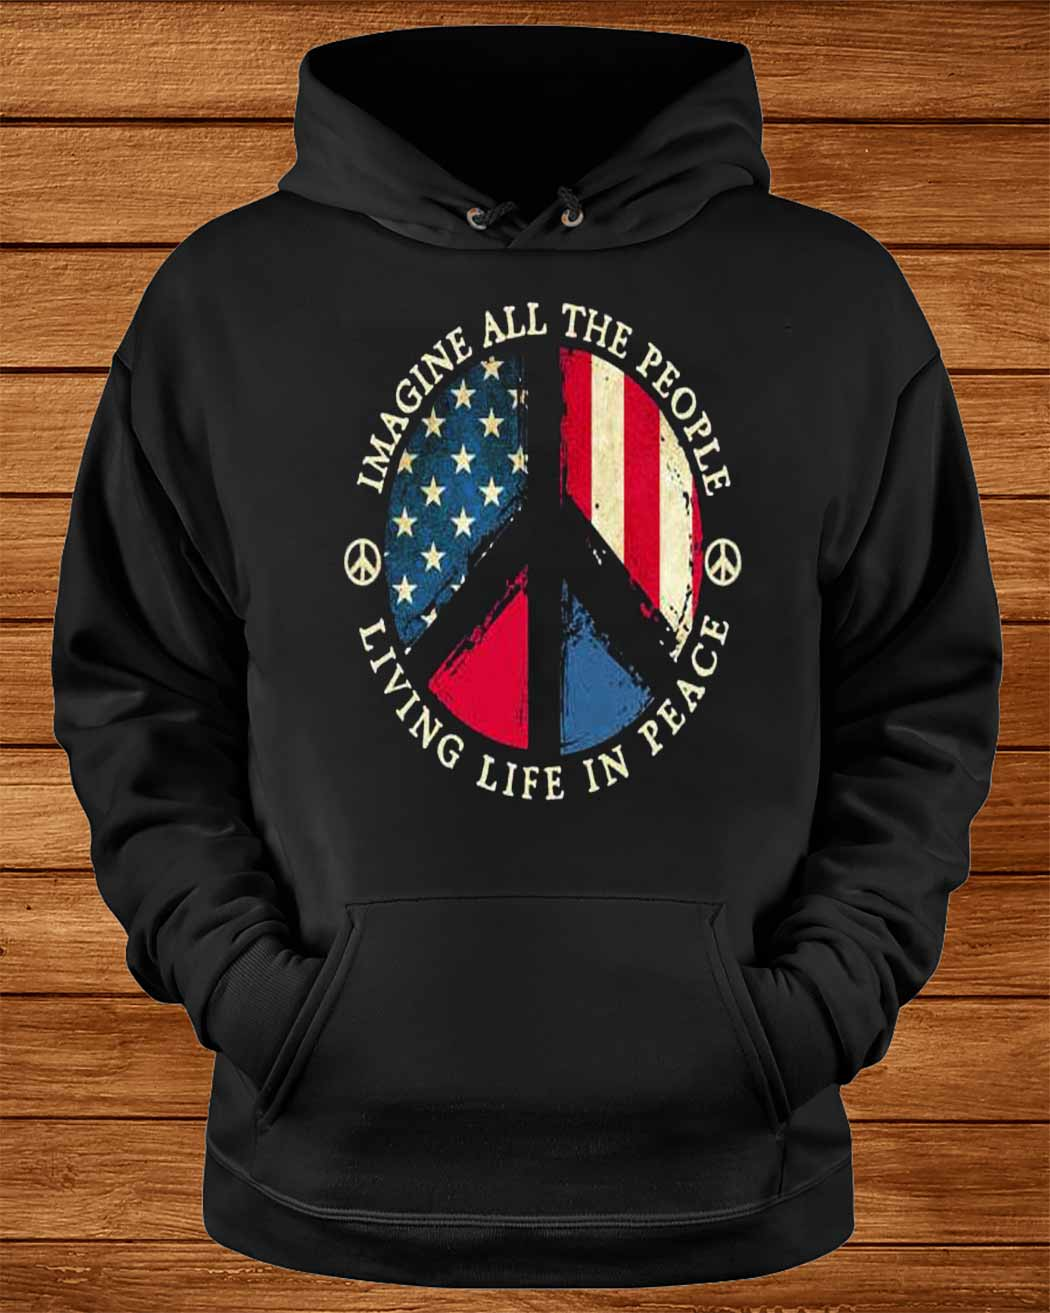 Imagine All The People Living Life In Peace American Flag Shirt